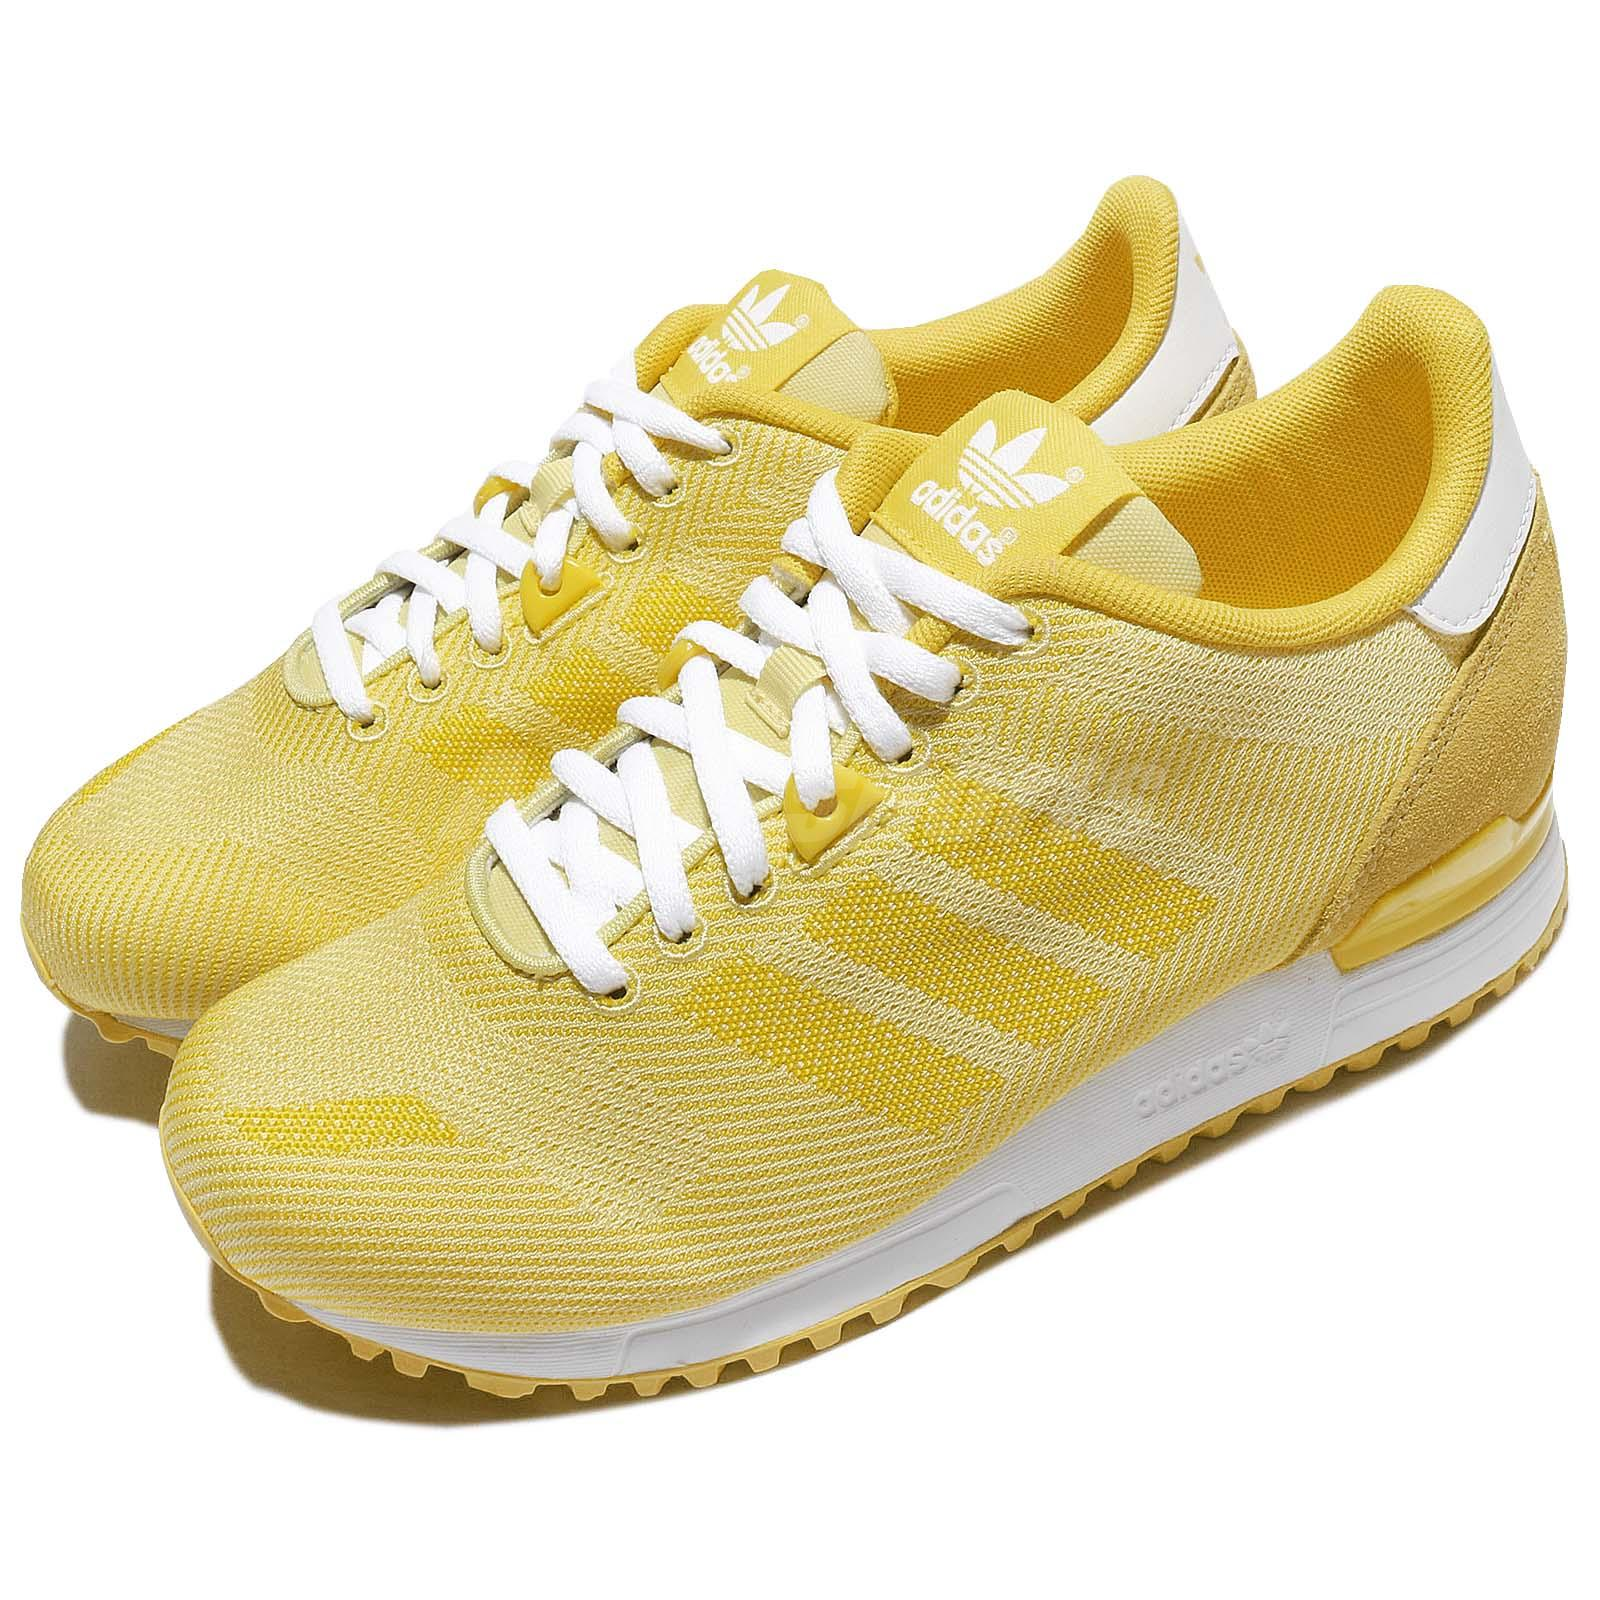 Adidas Originals ZX 700 Weave W Yellow Womens Running